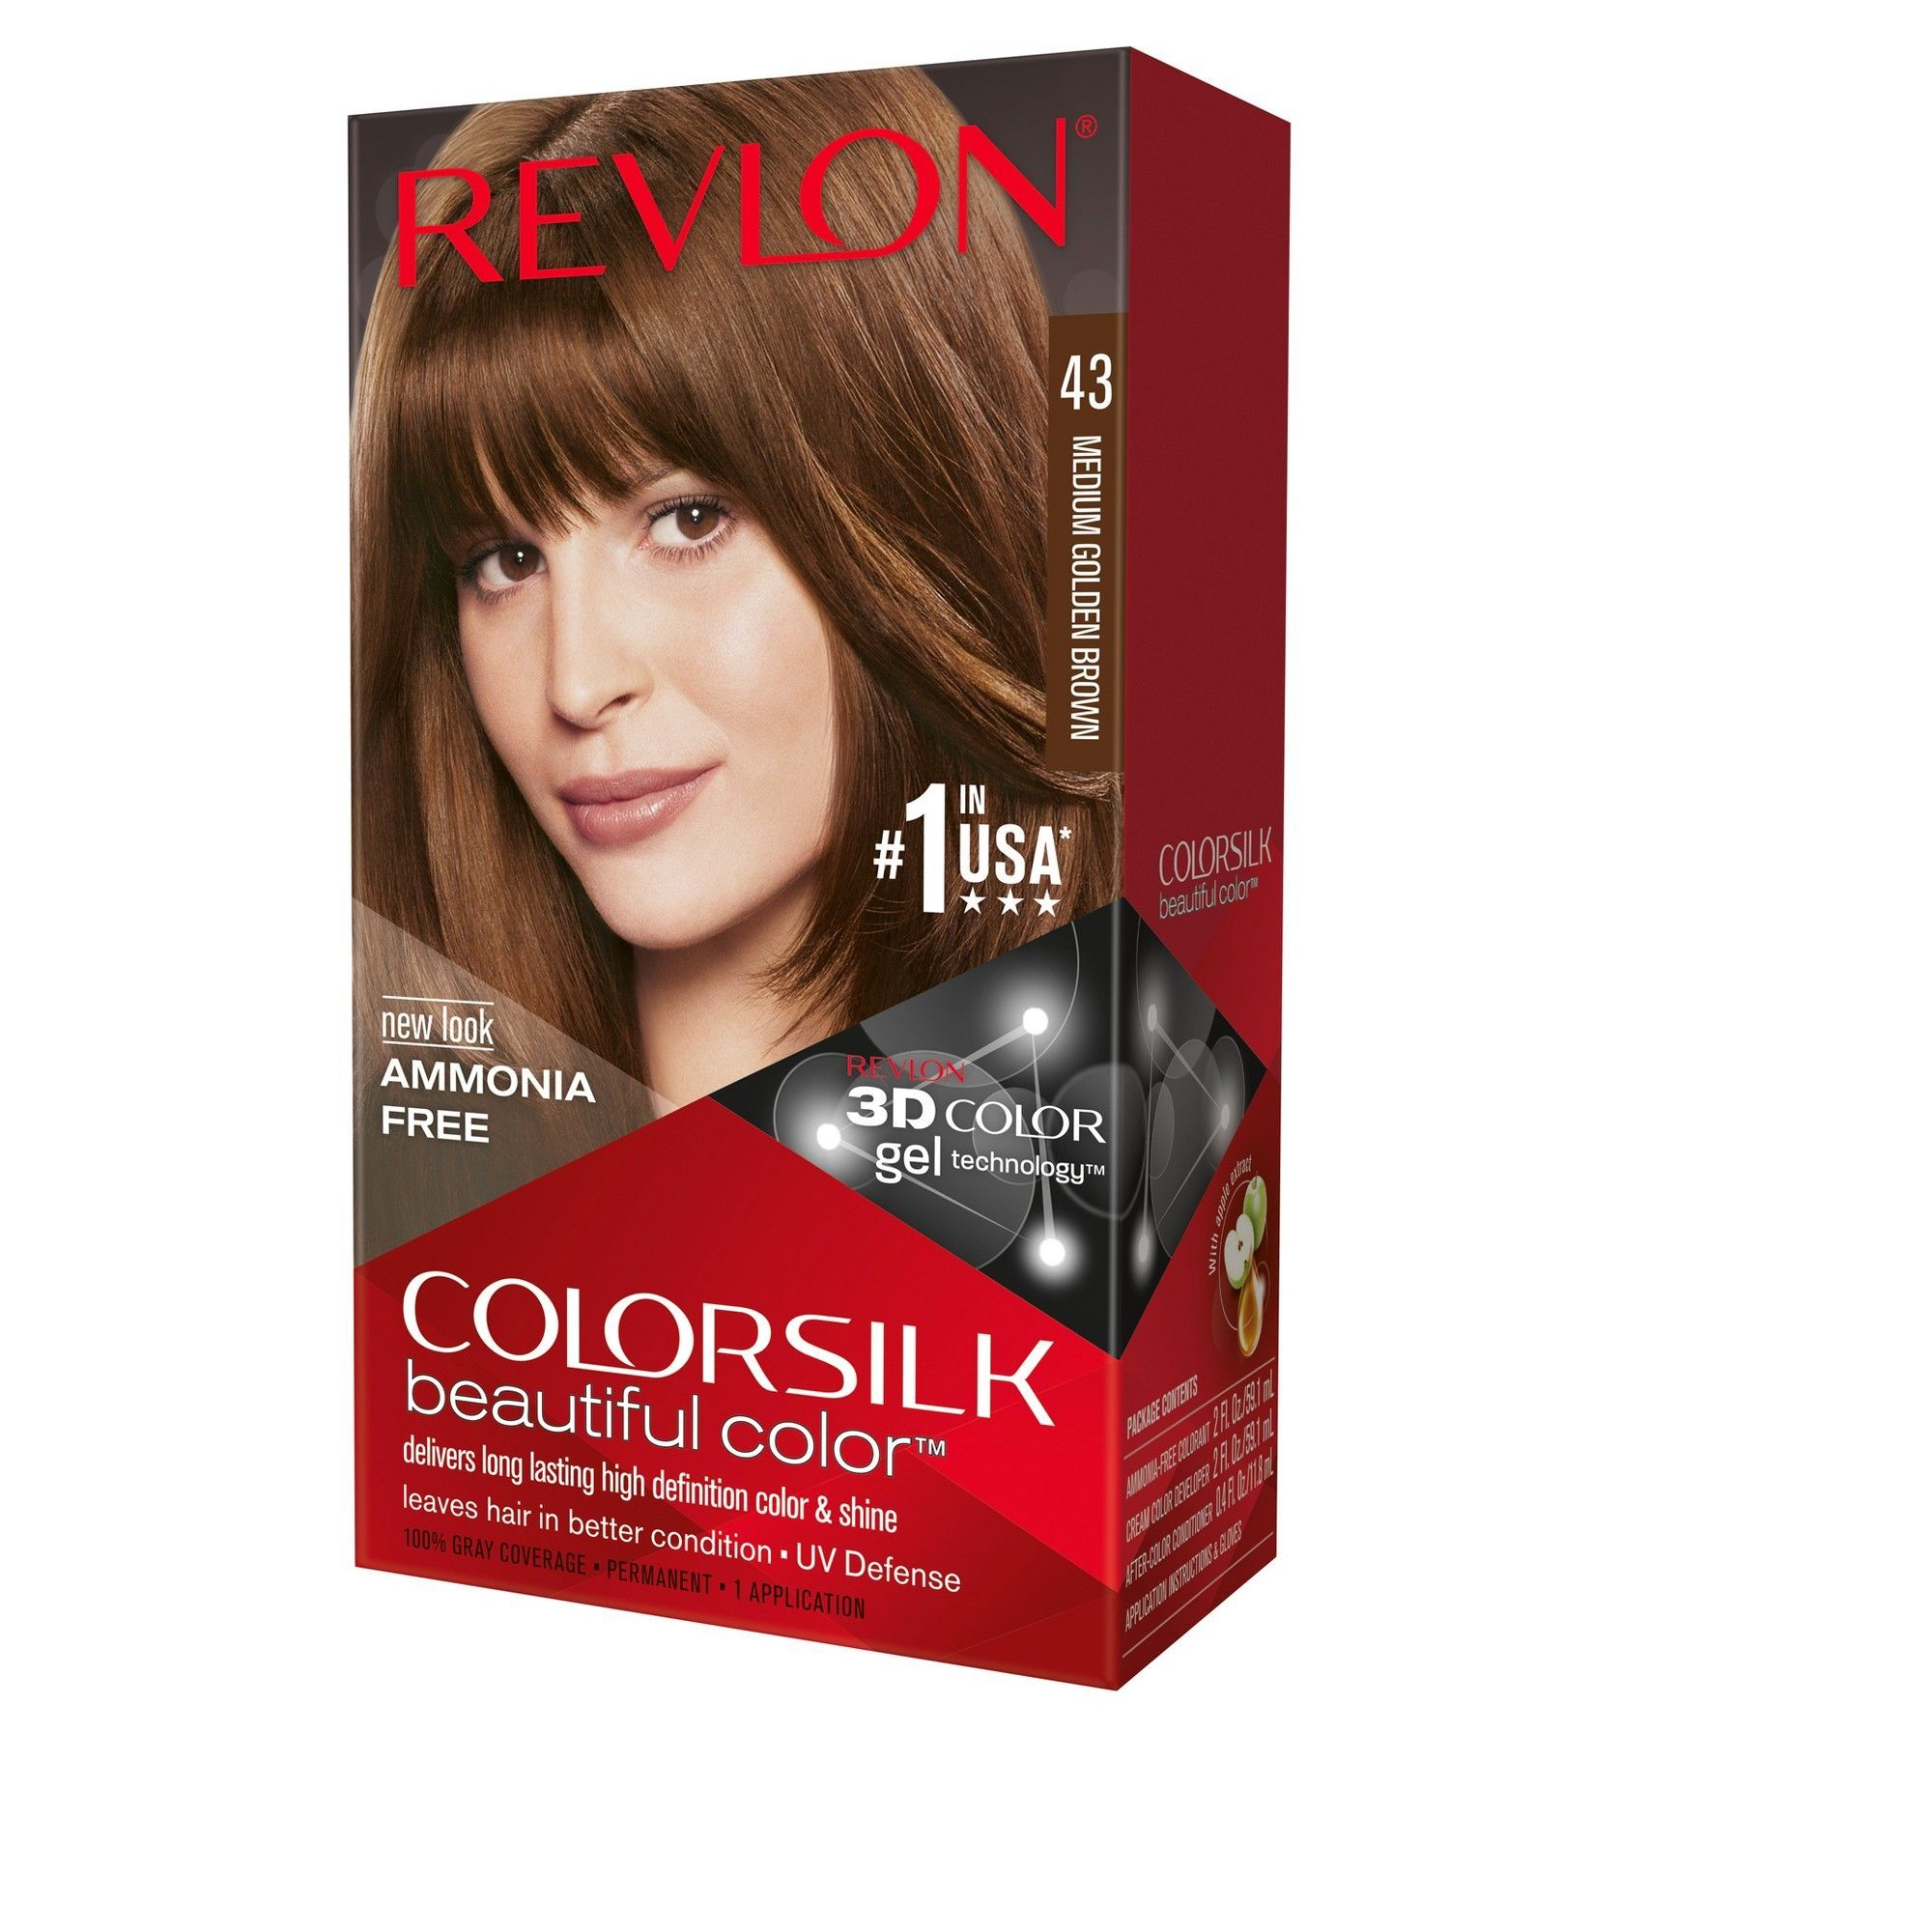 Revlon Colorsilk Beautiful Permanent Hair Color Medium Golden